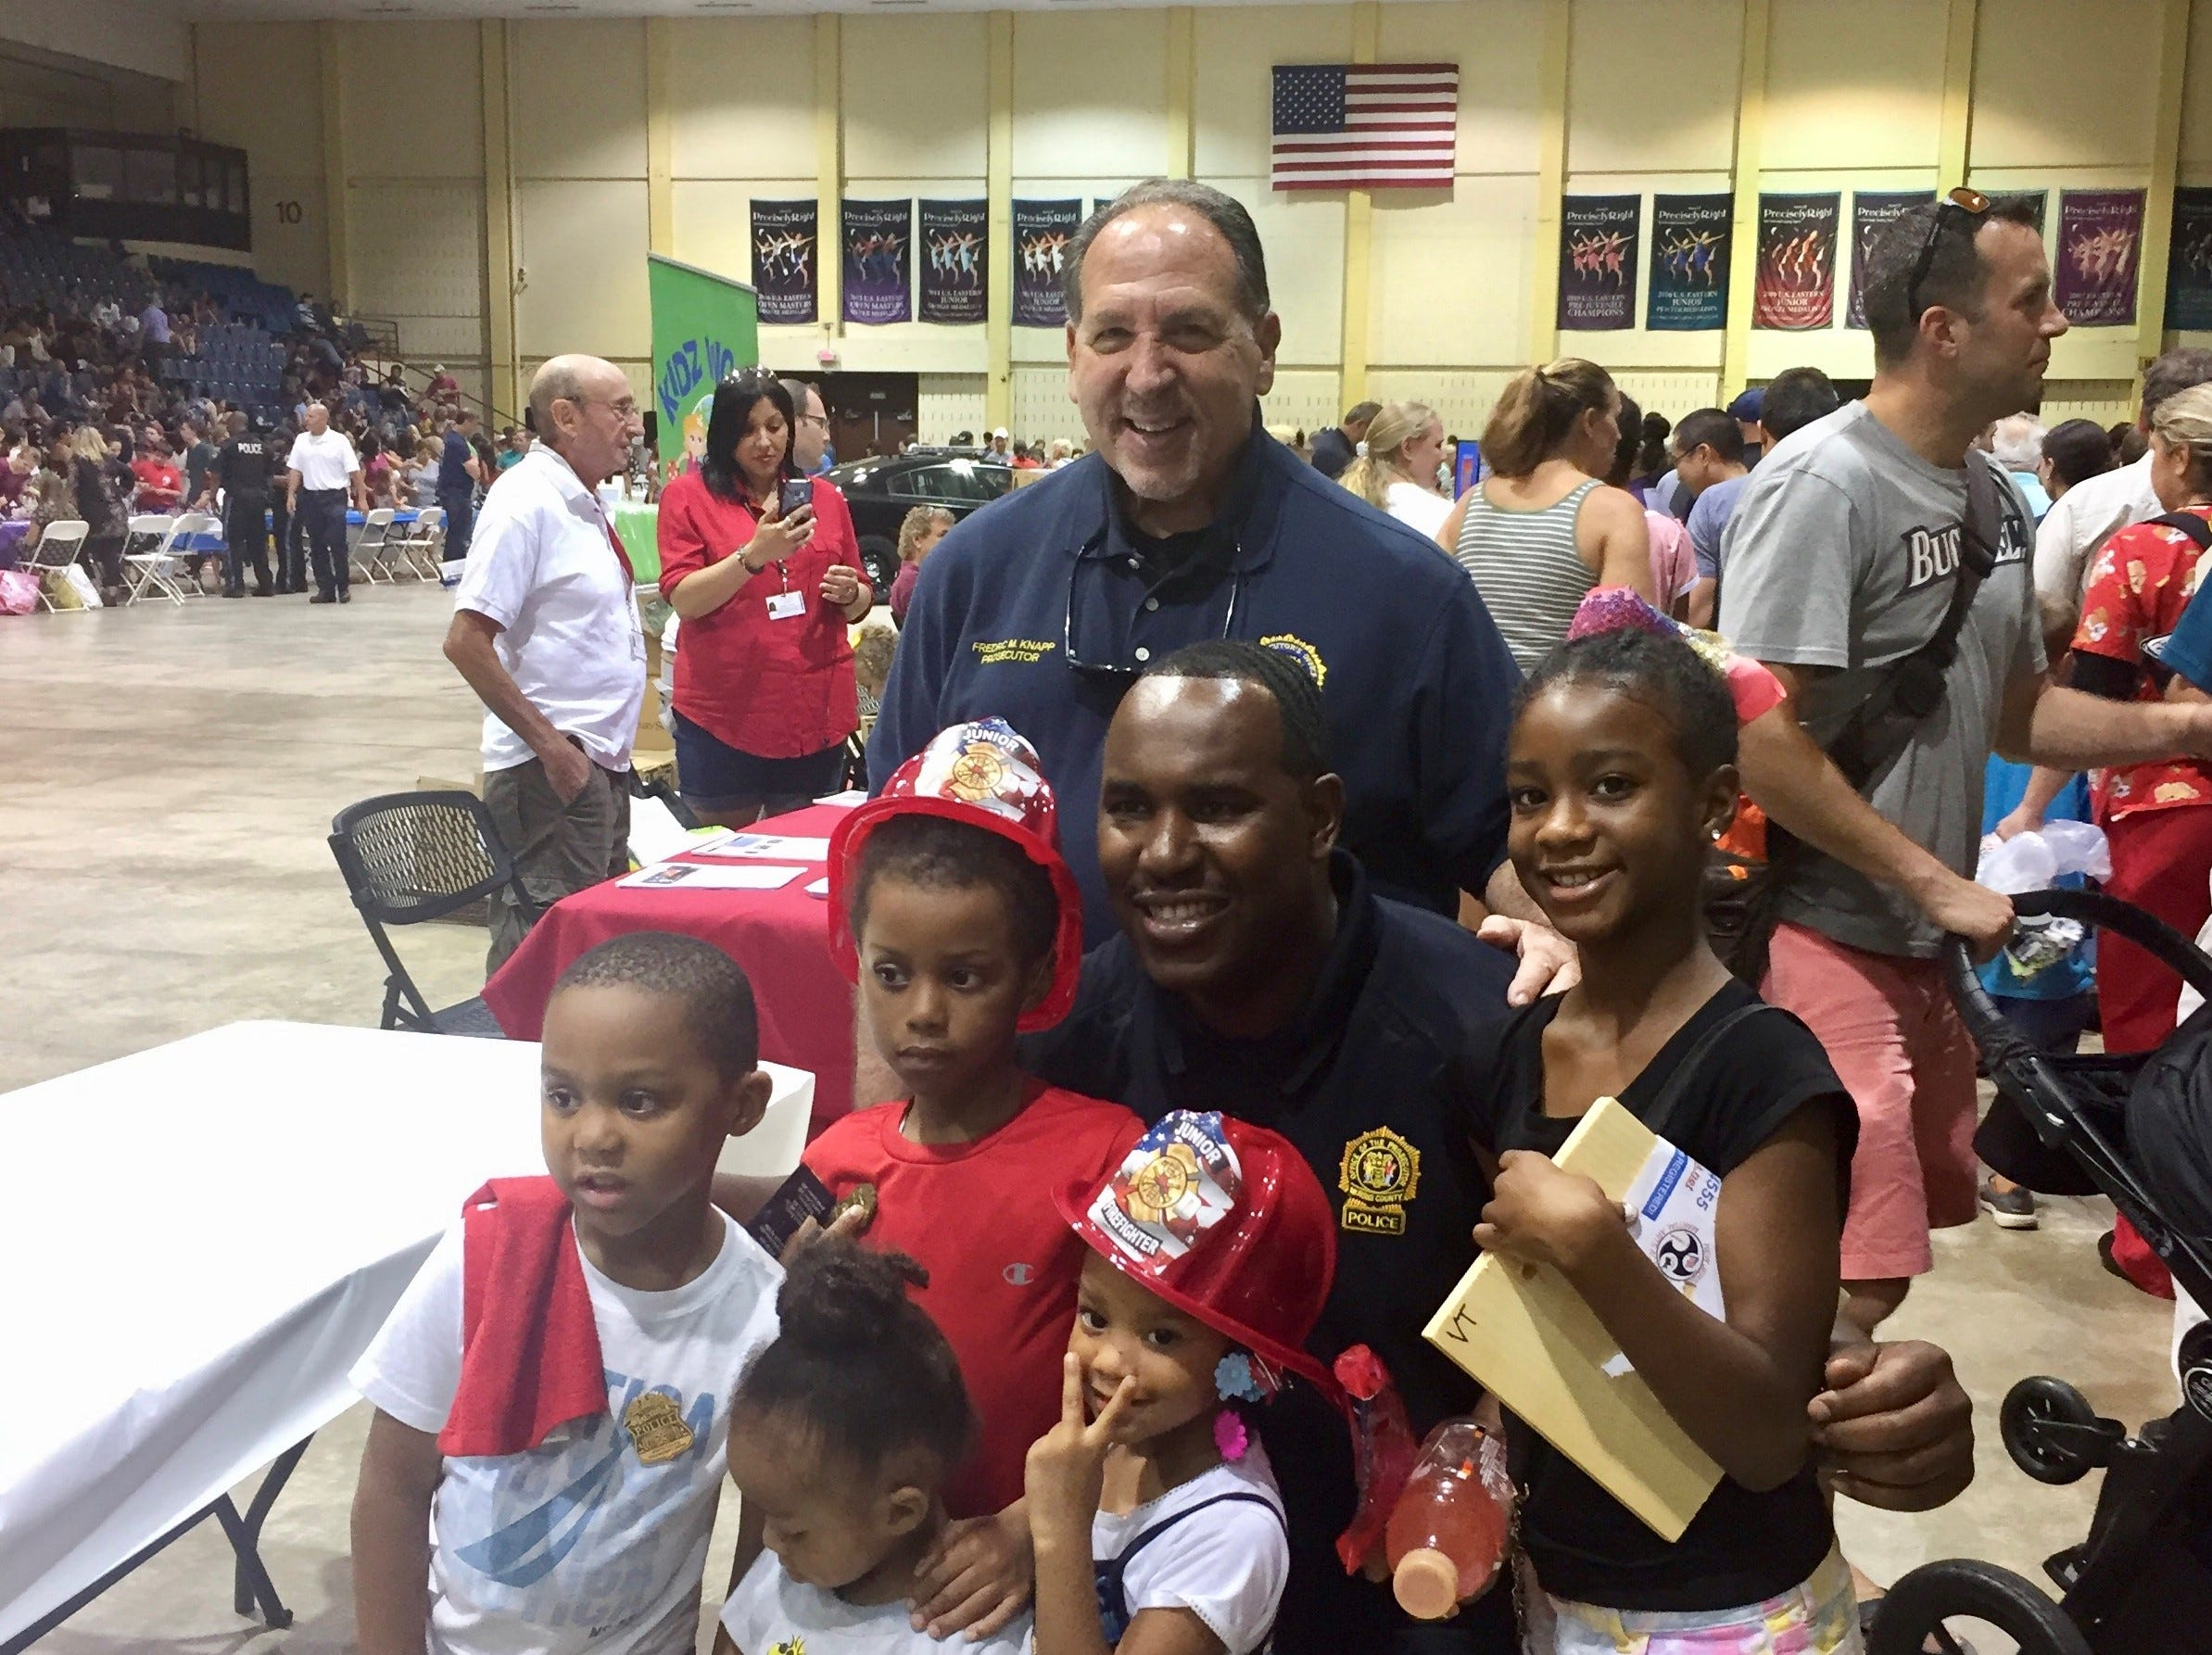 Prosecutor Fredric M. Knapp and Det. Sup. Patrick LaGuerre with youngsters at the National Night Out event at Mennen Arena on Tuesday, August 7, 2018.